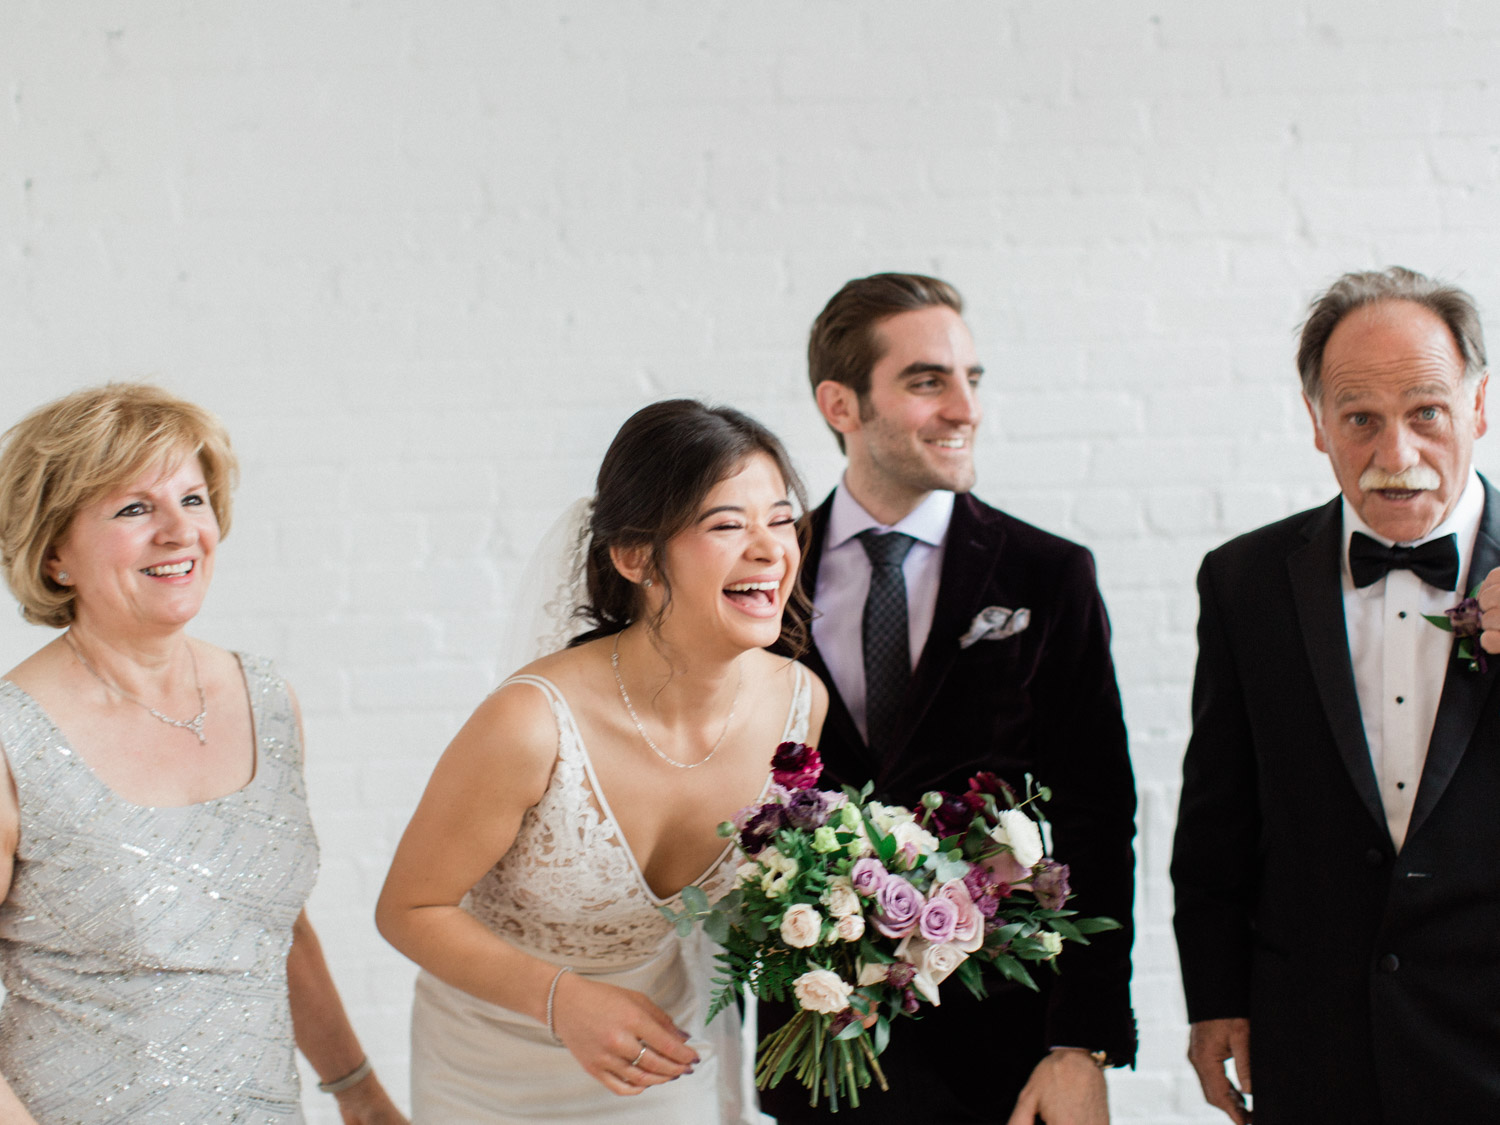 Candid natural portrait of the wedding party. Captured by Toronto wedding photographer Corynn Fowler Photography